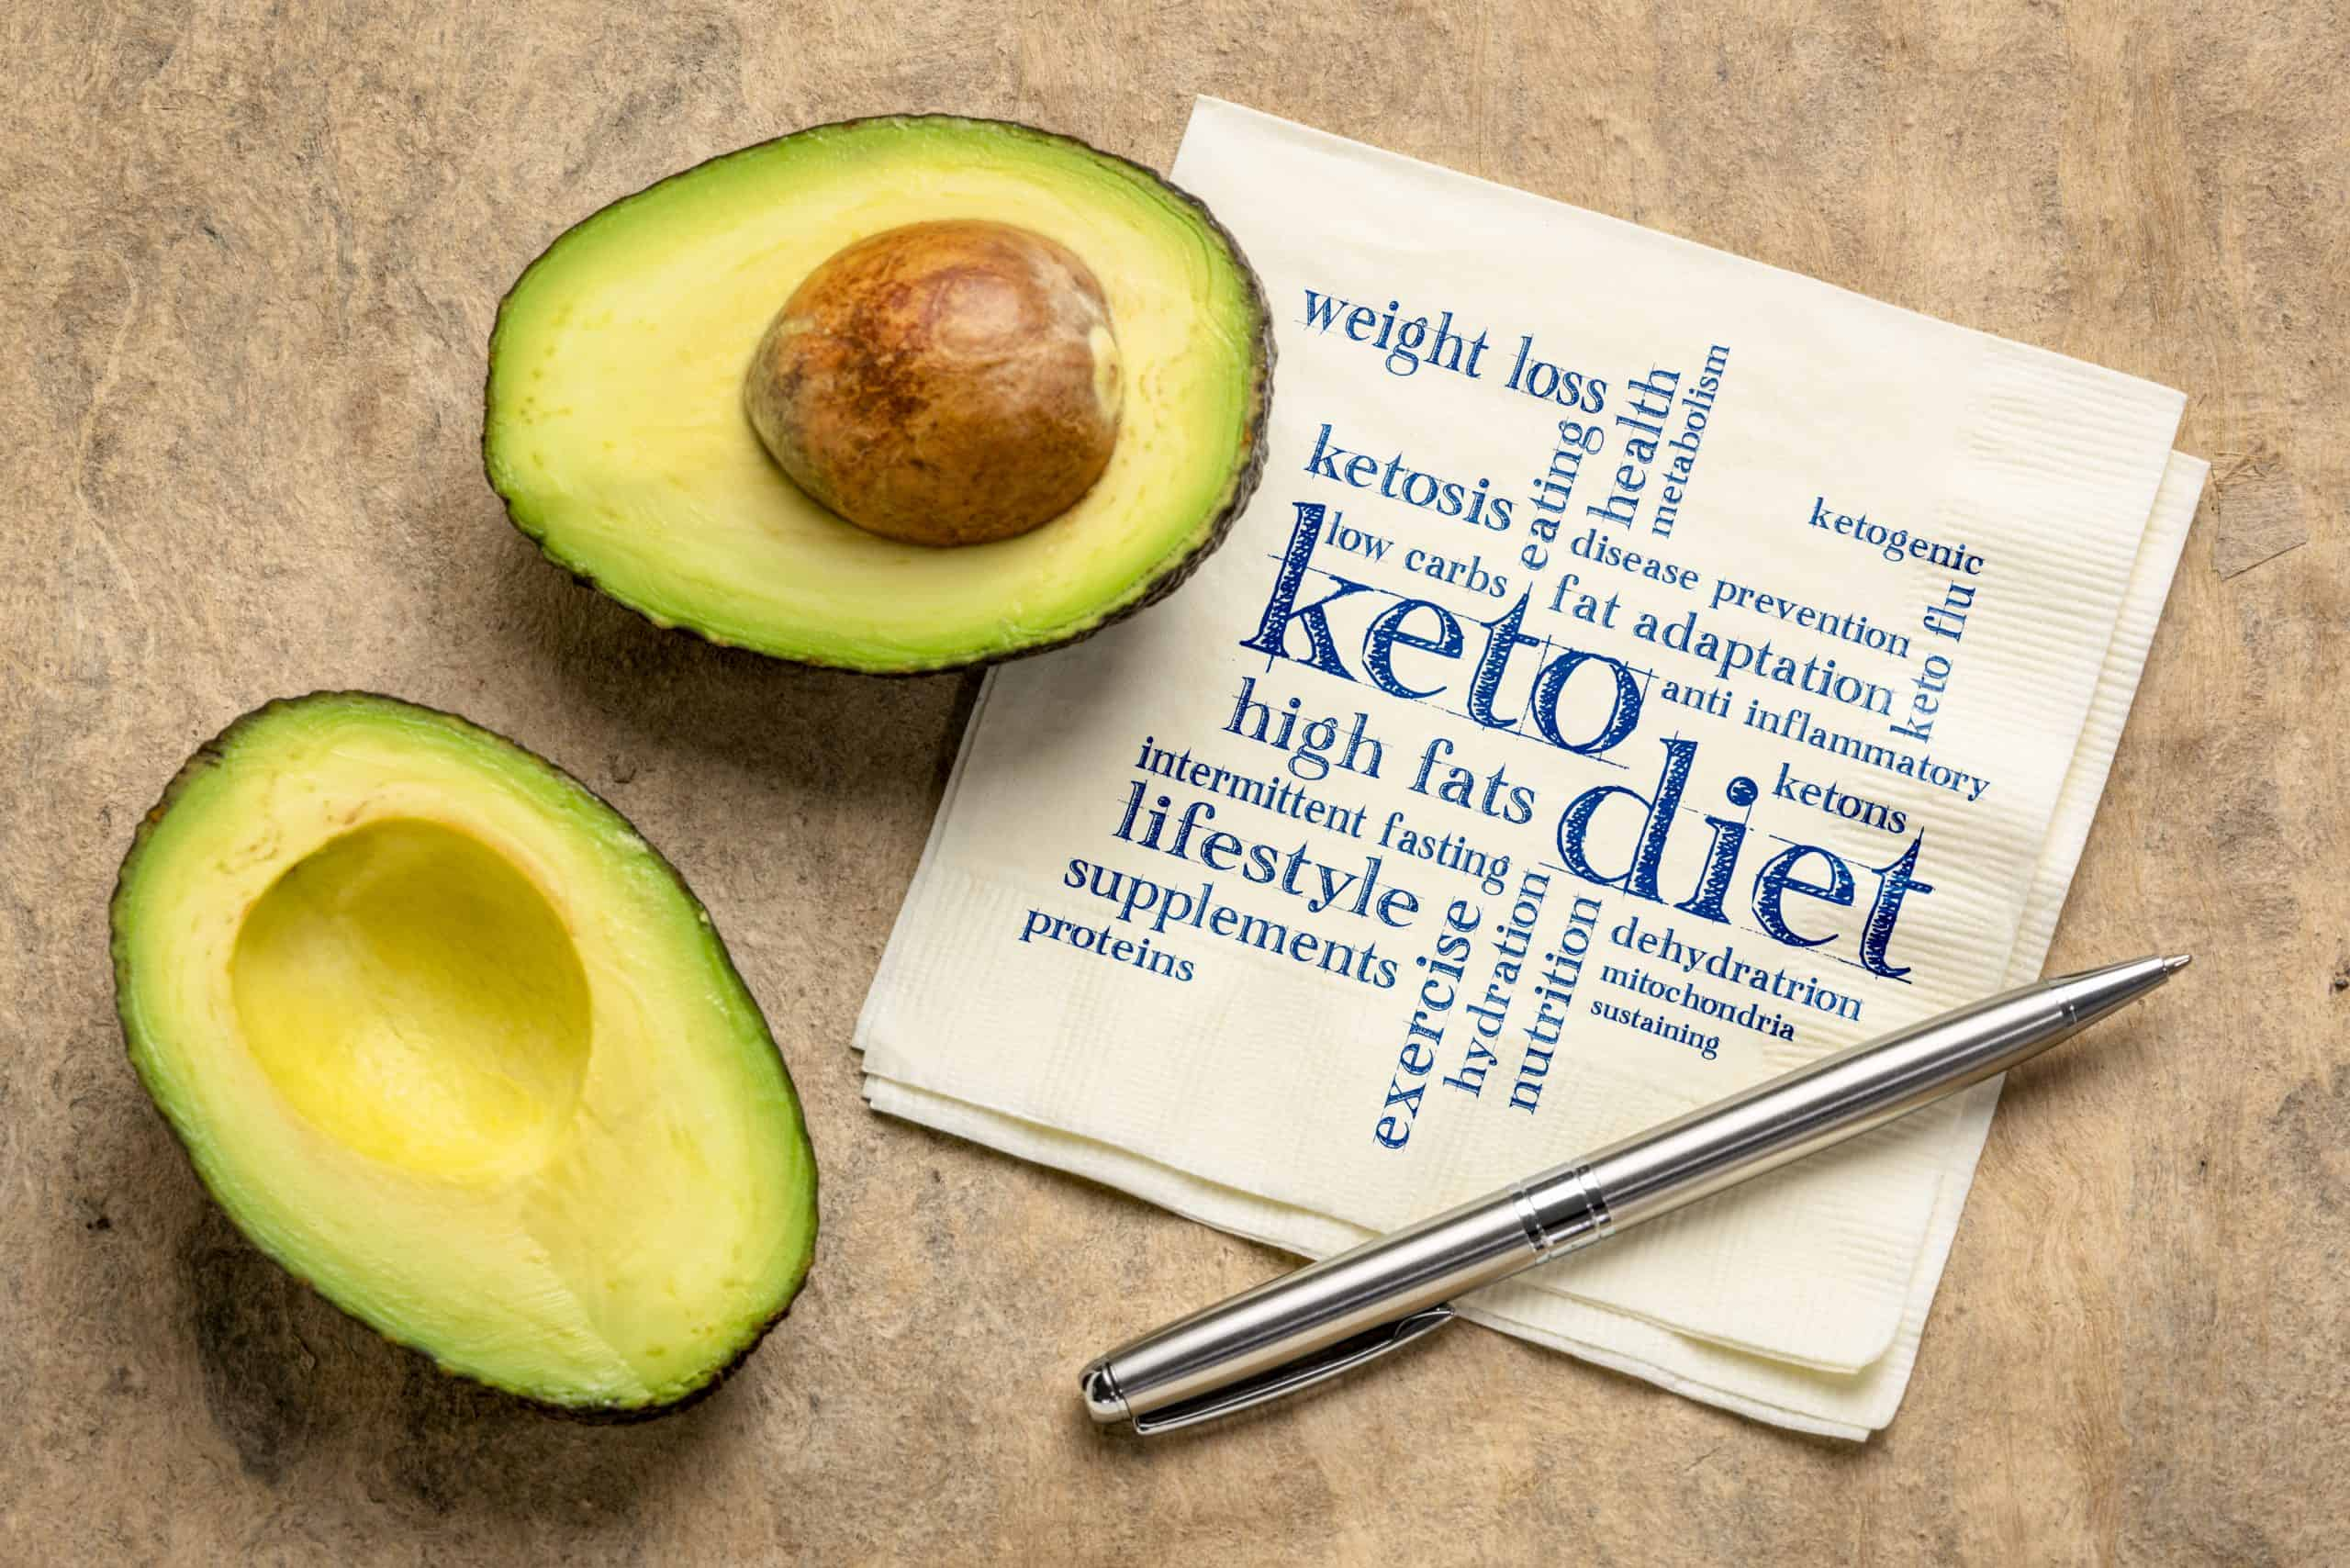 keto diet word cloud on napkin with a cut avocado on a table